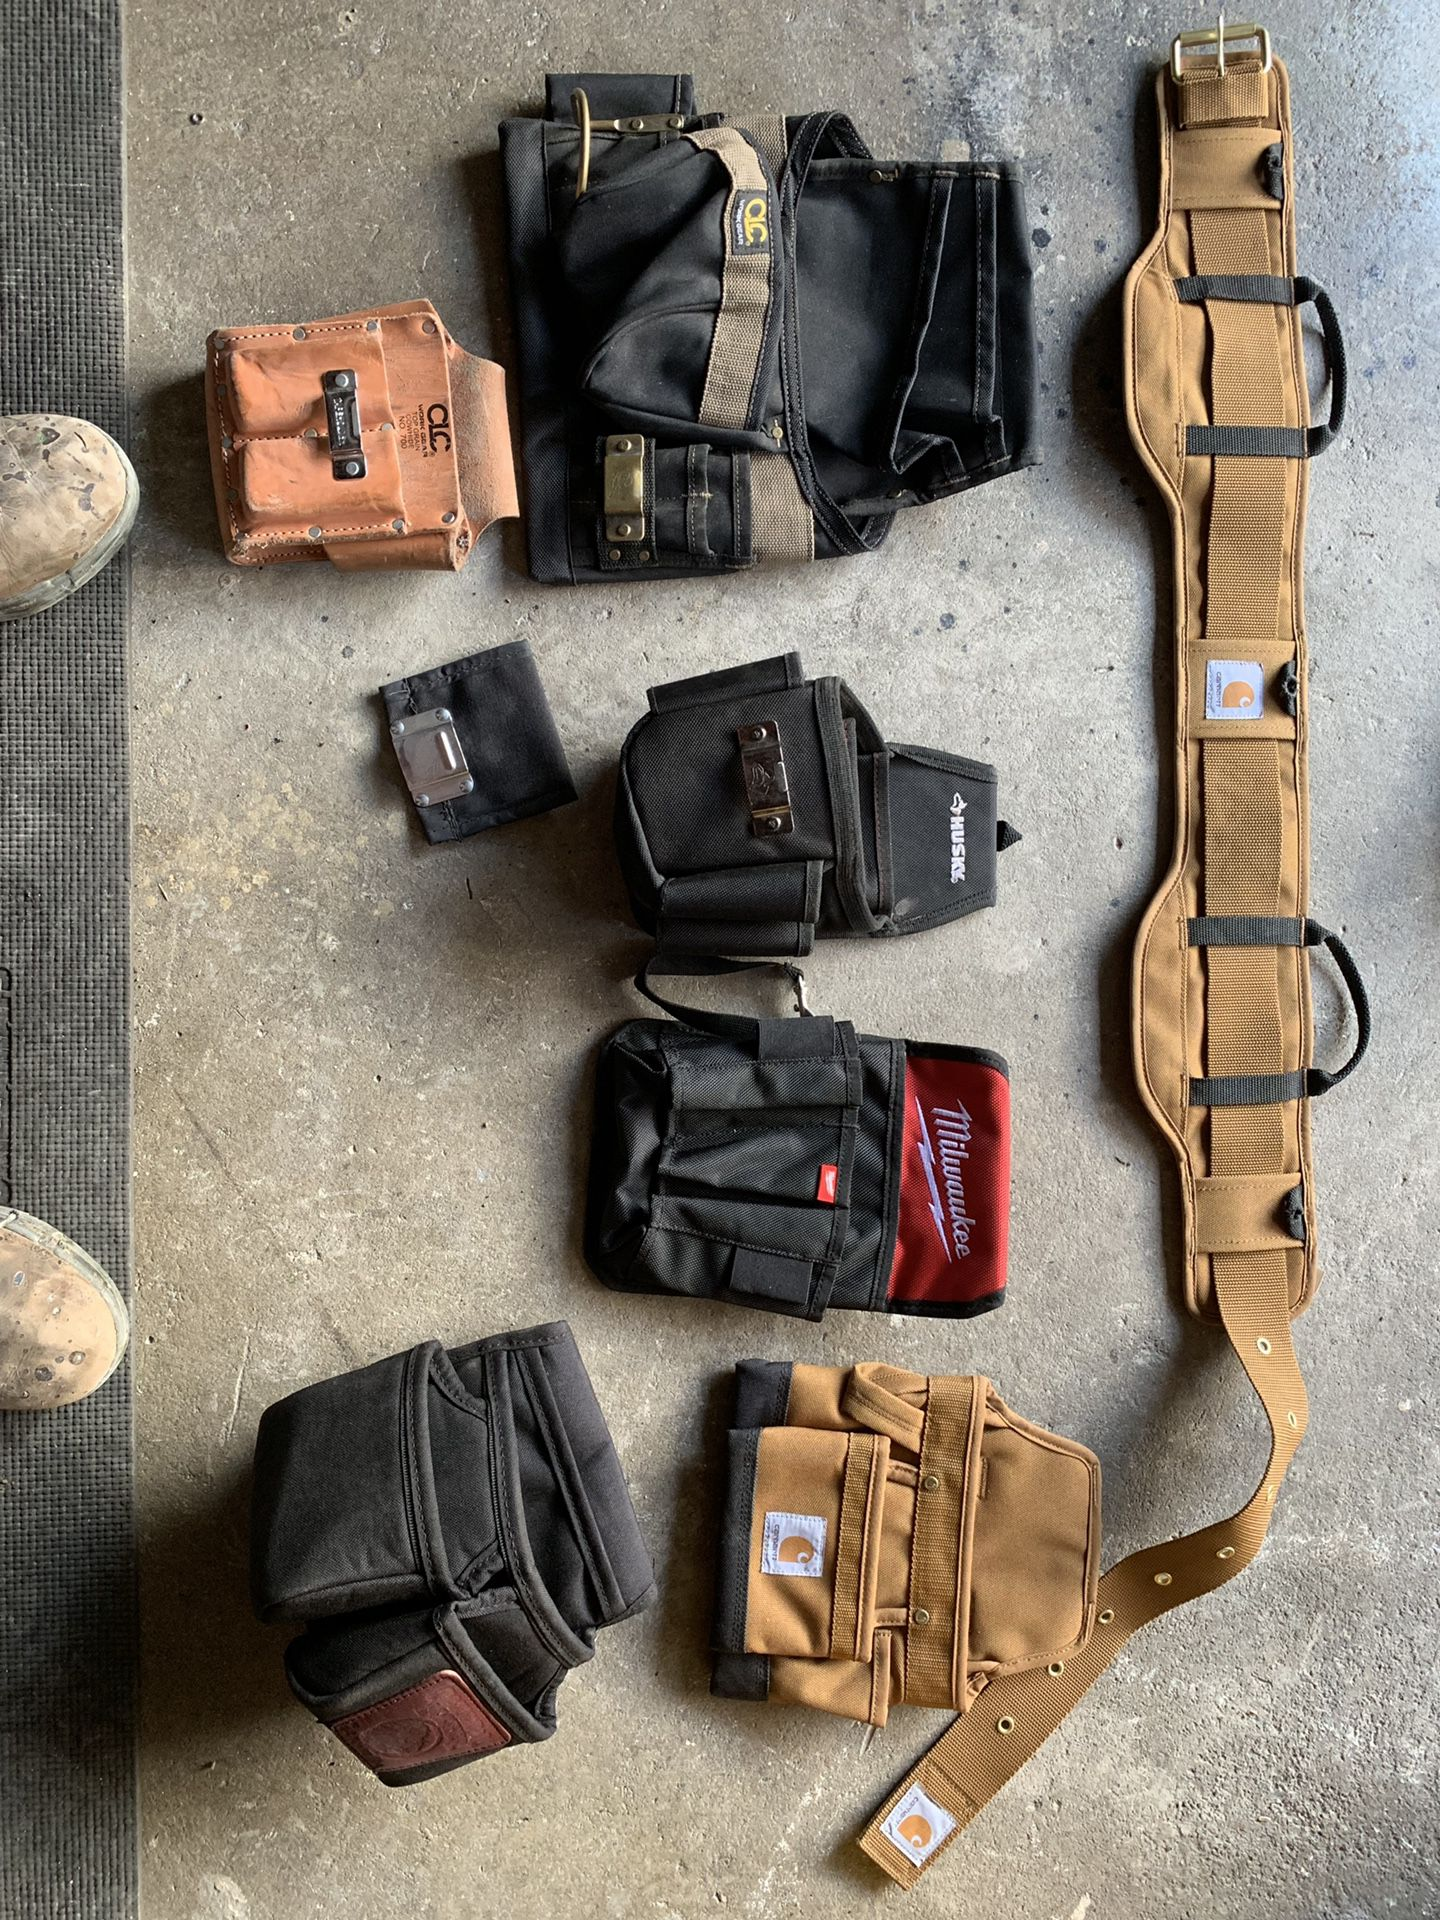 Tool bags and belt prices in description